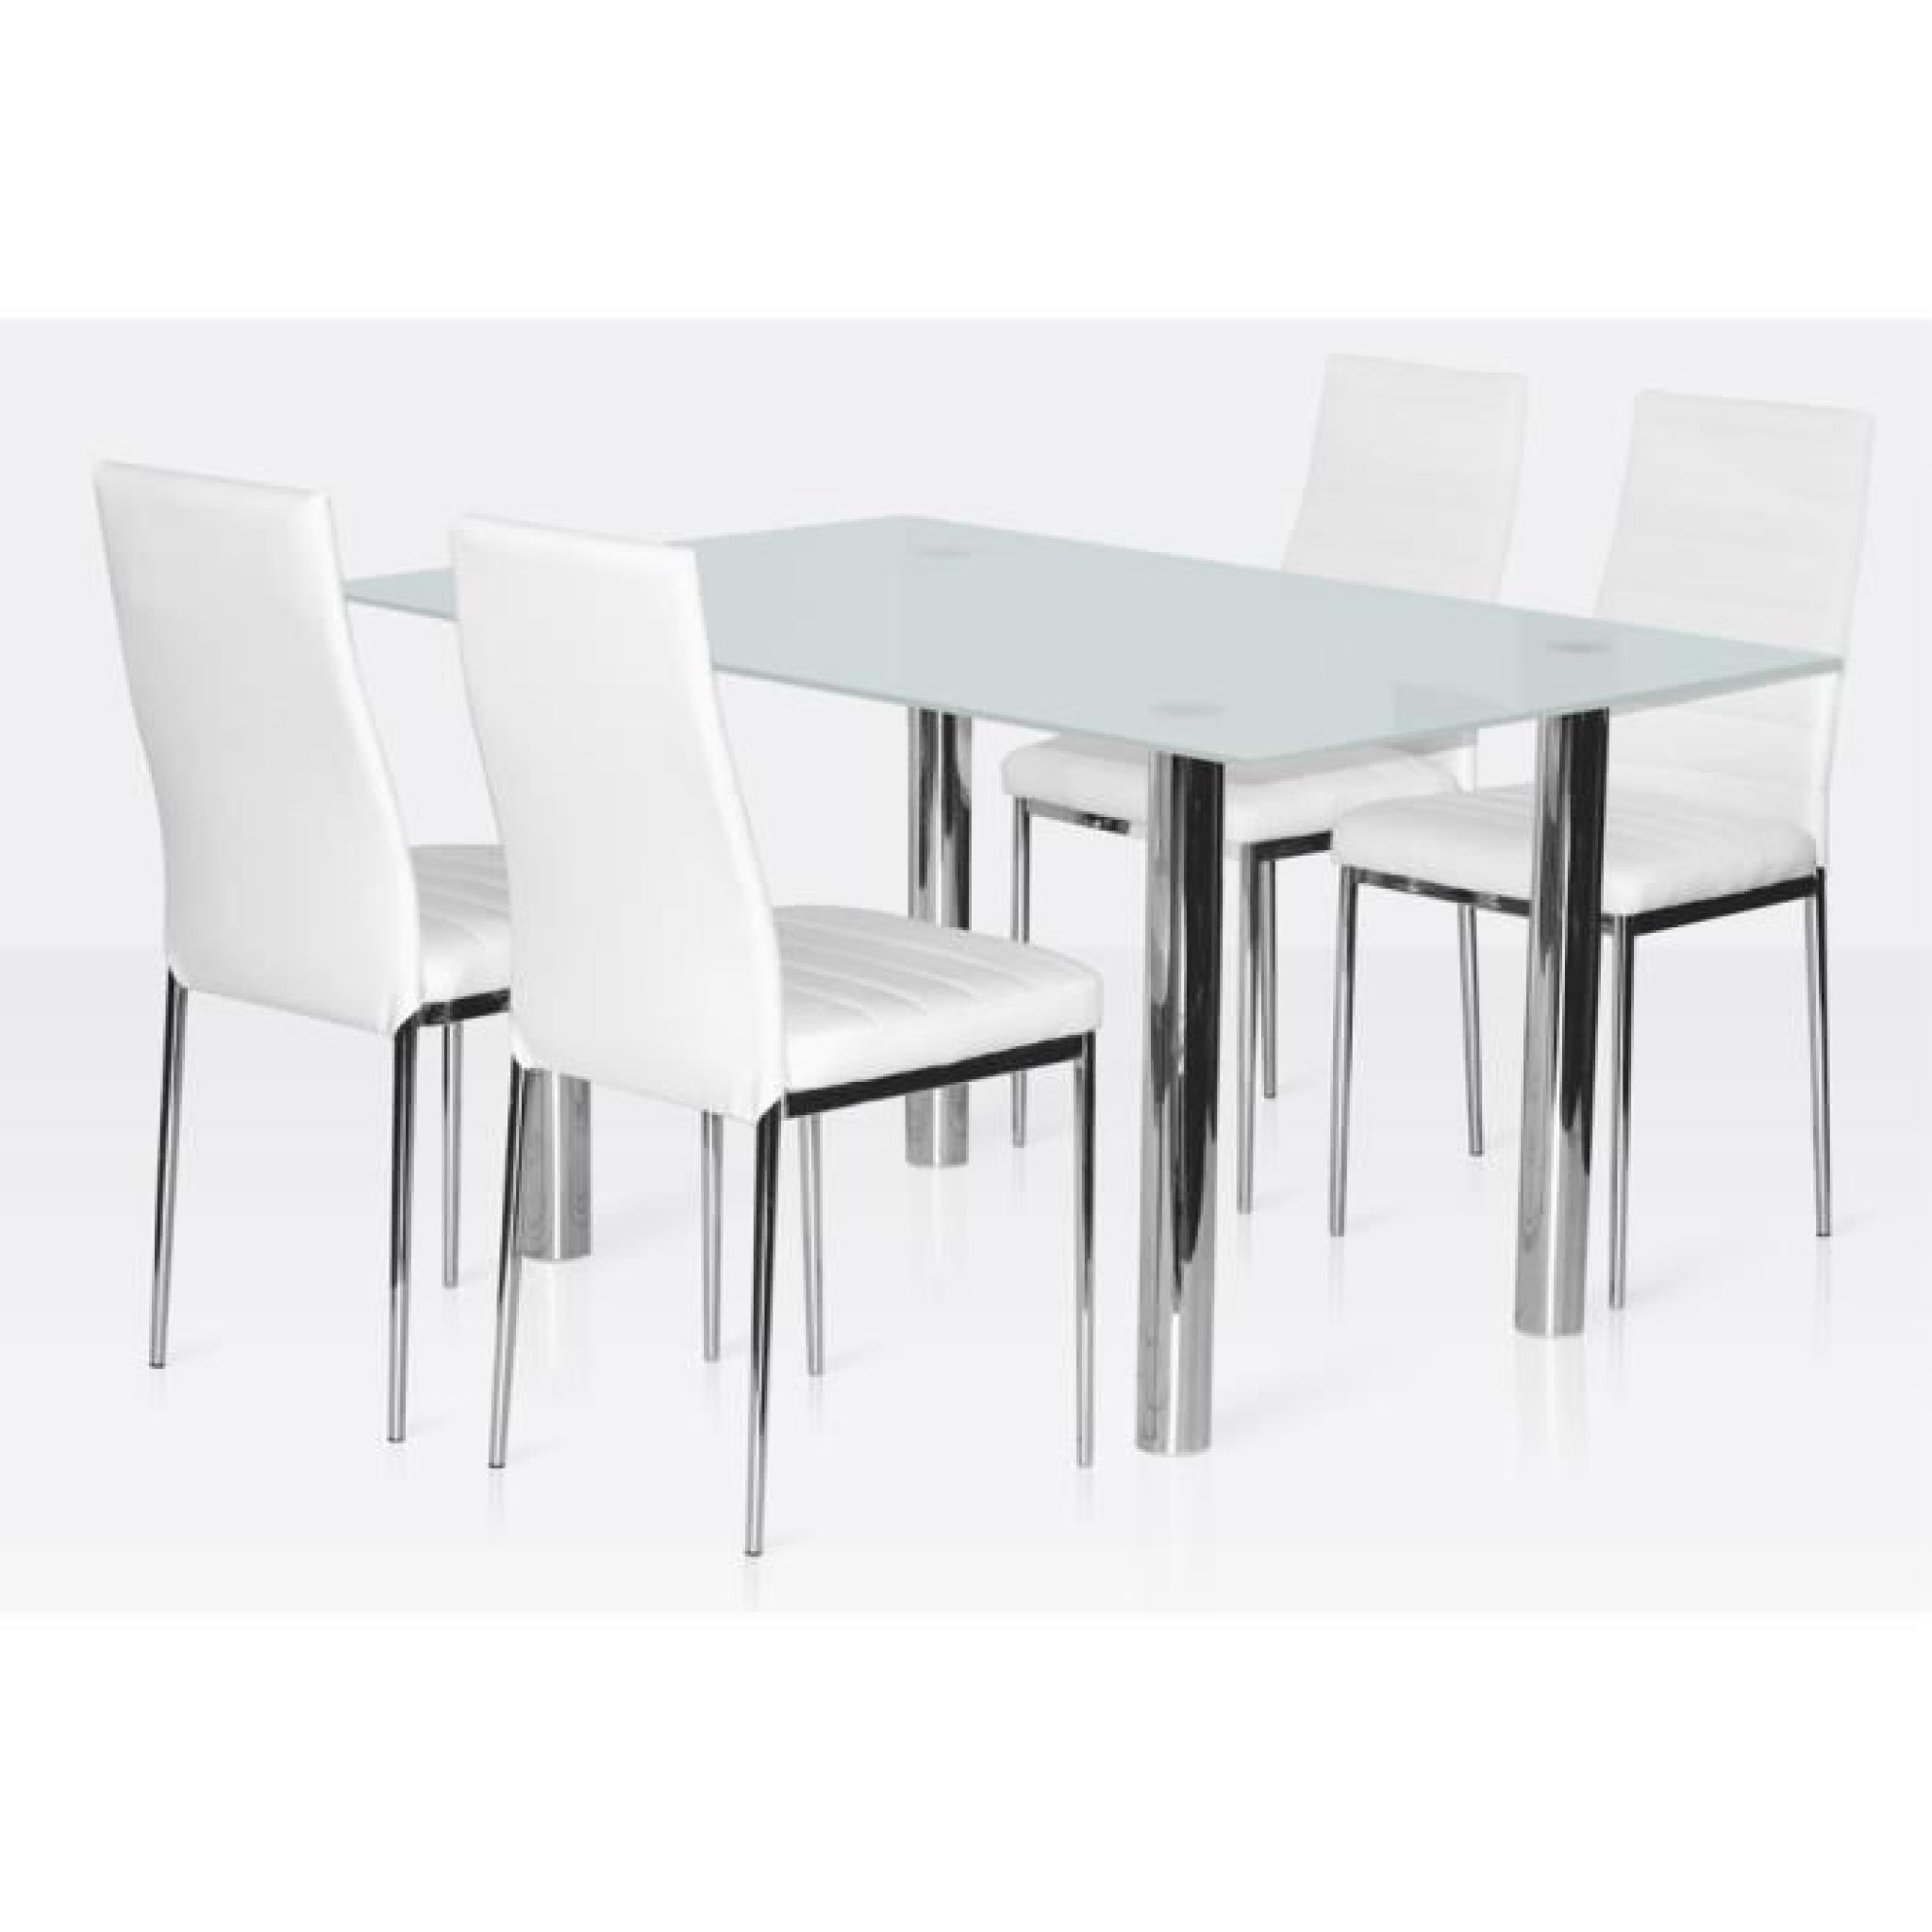 90 table a manger en verre design pas cher table a